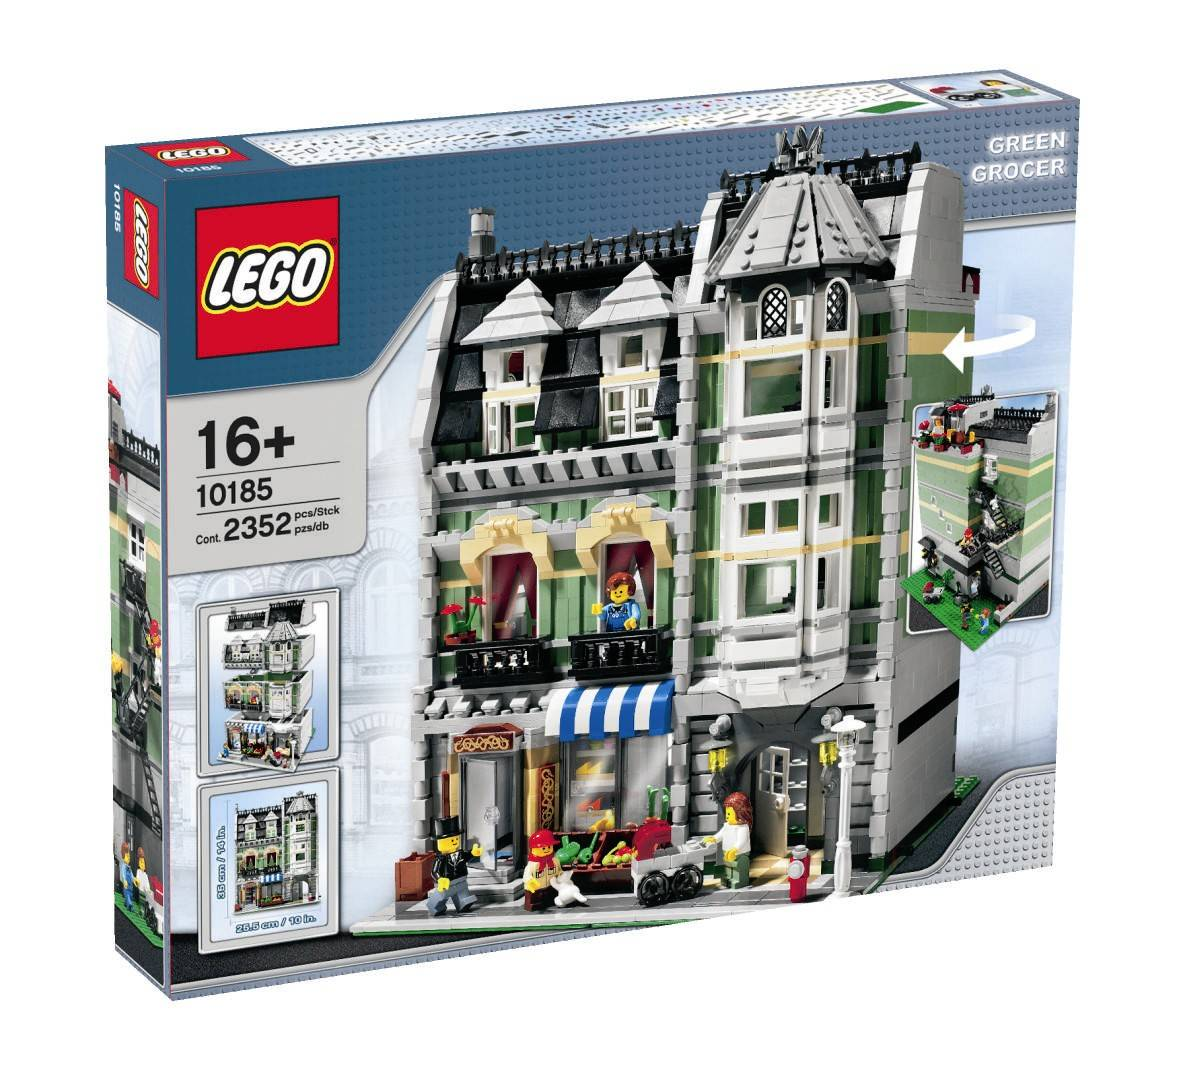 WHOLESALE LEGO Creator Green Grocer 10185 Lego Town Sets